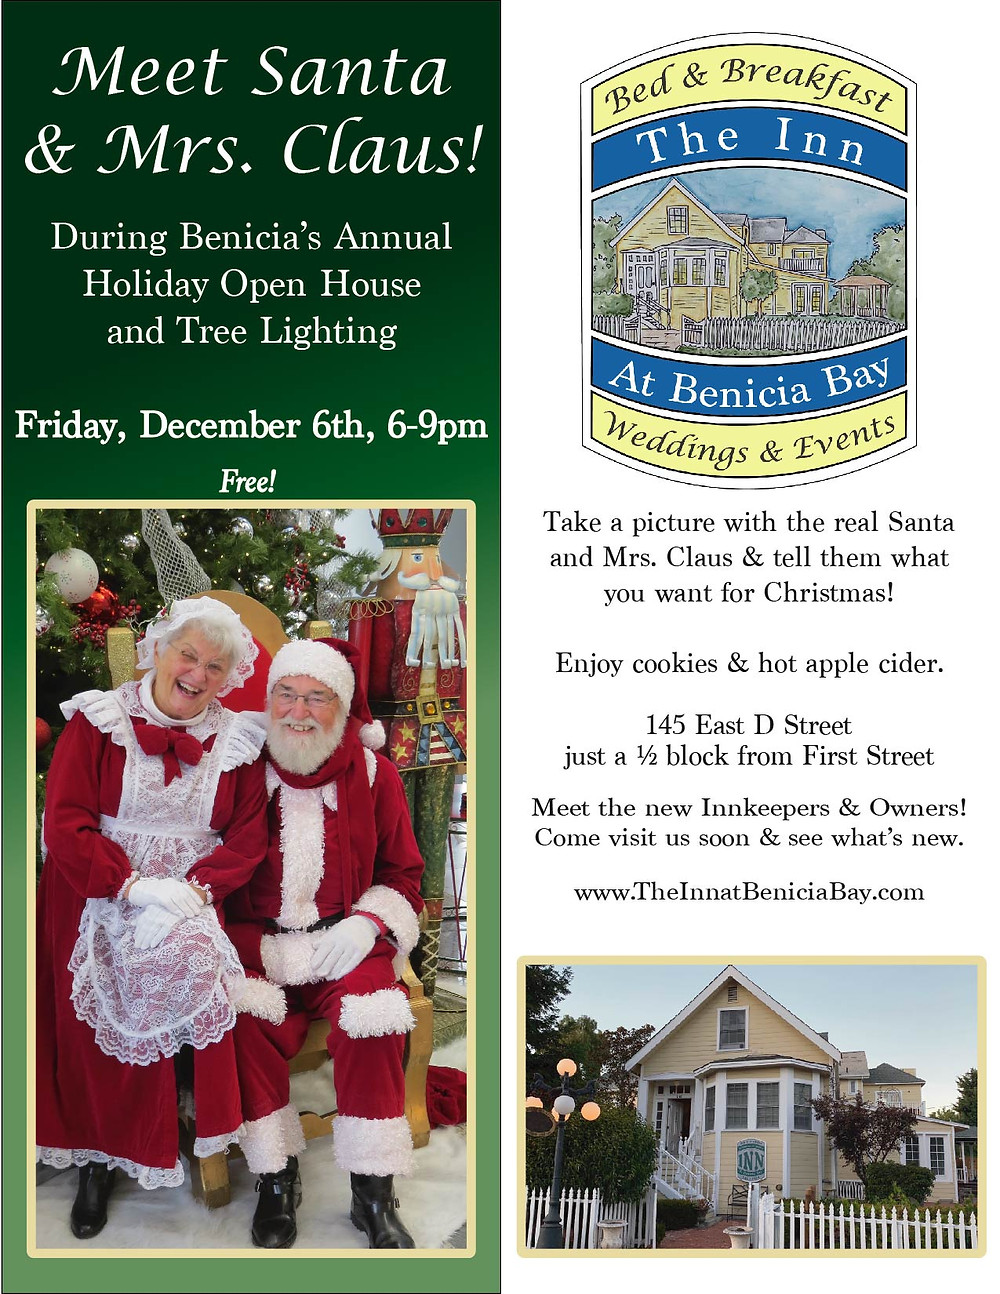 Meet Santa and Mrs. Claus in Benicia December 6